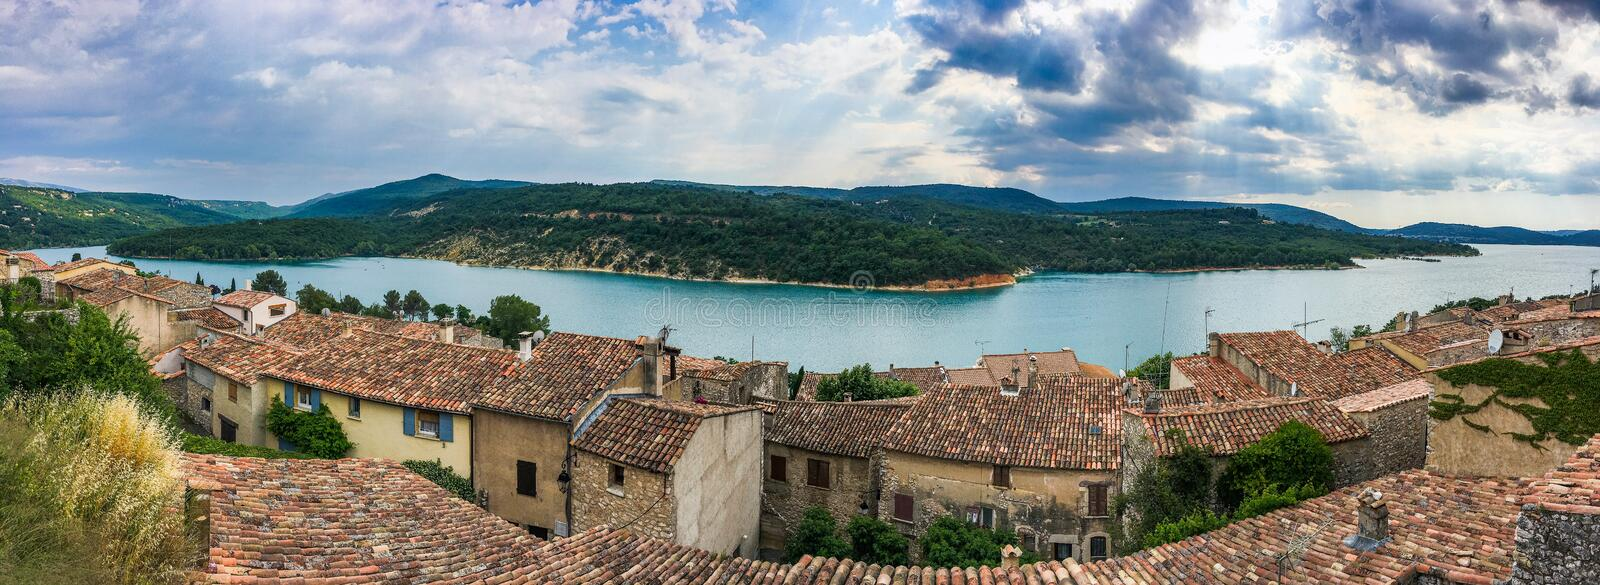 Panoramic view of village Bauduen, France on lake Sainte Croix. Panoramic view of old village Bauduen, France on lake Sainte Croix royalty free stock photography